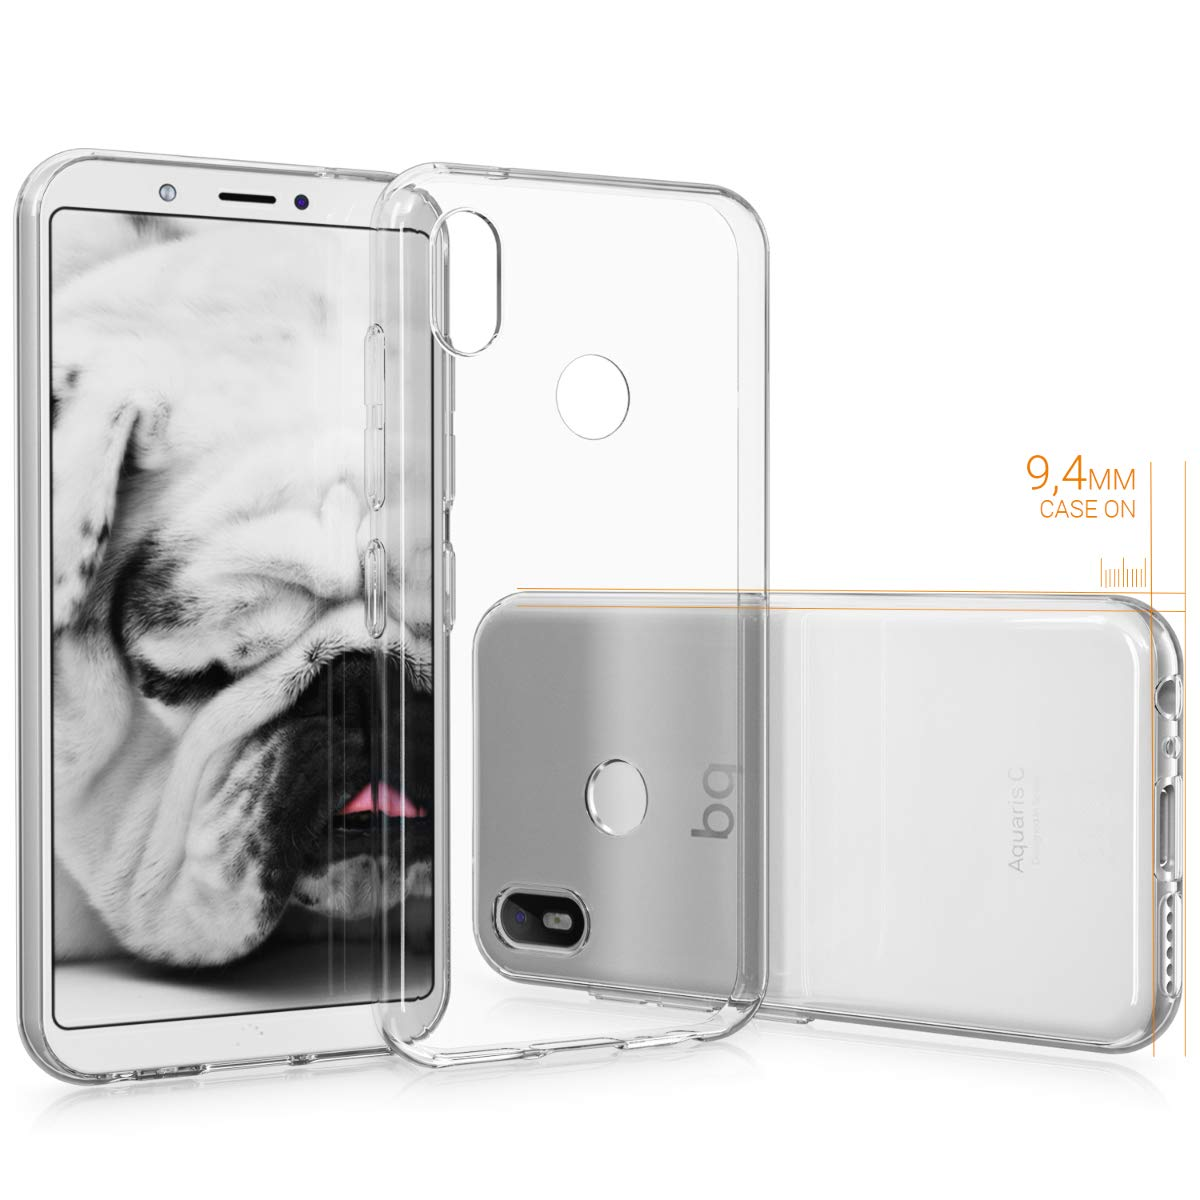 Amazon.com: kwmobile Crystal Case for bq Aquaris C - Soft ...